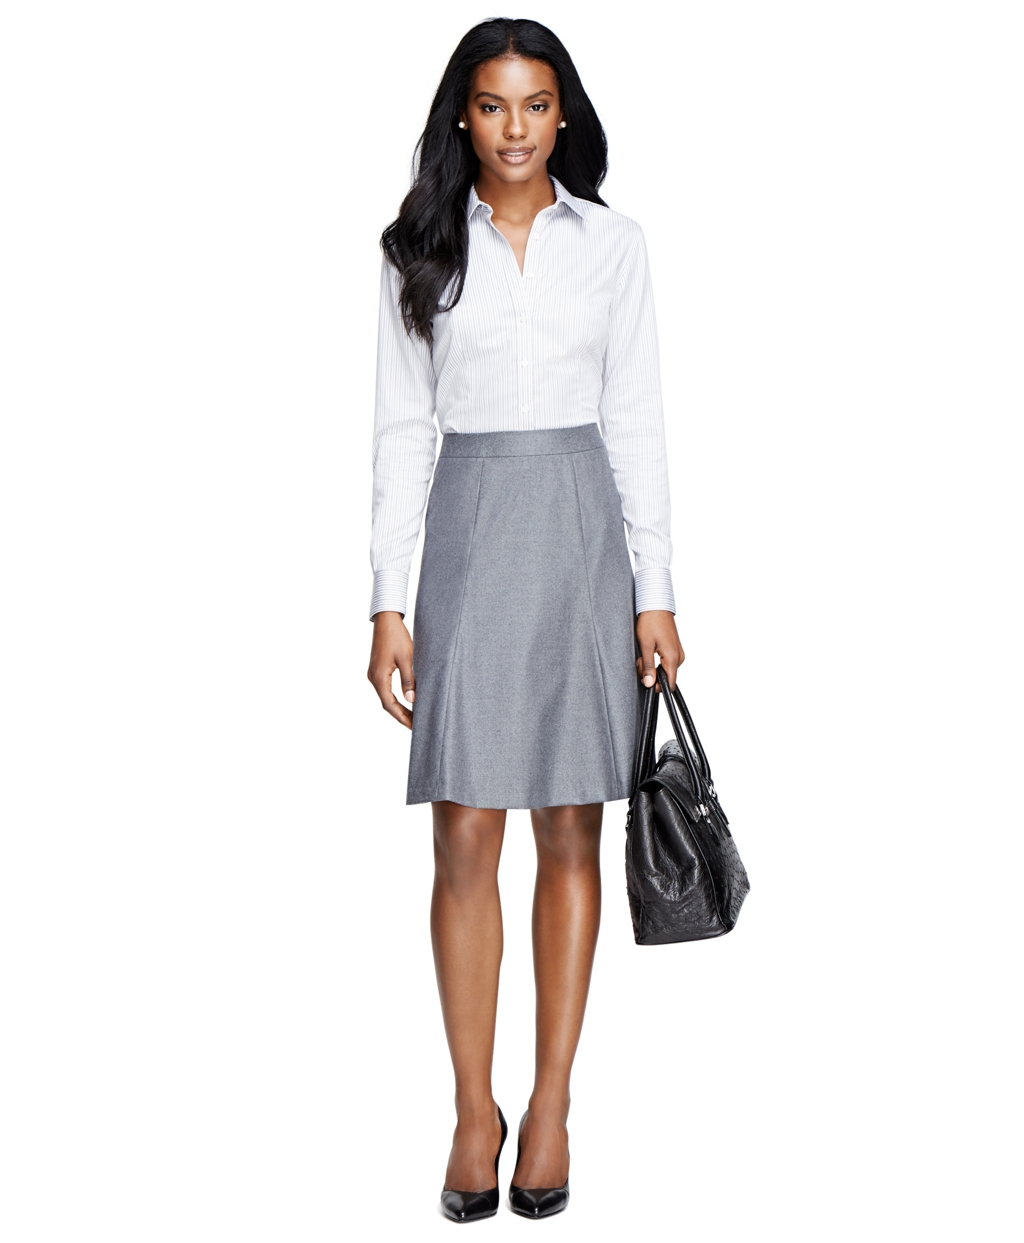 Free shipping BOTH ways on hatley a line cable knit skirt grey, from our vast selection of styles. Fast delivery, and 24/7/ real-person service with a smile. Click or call